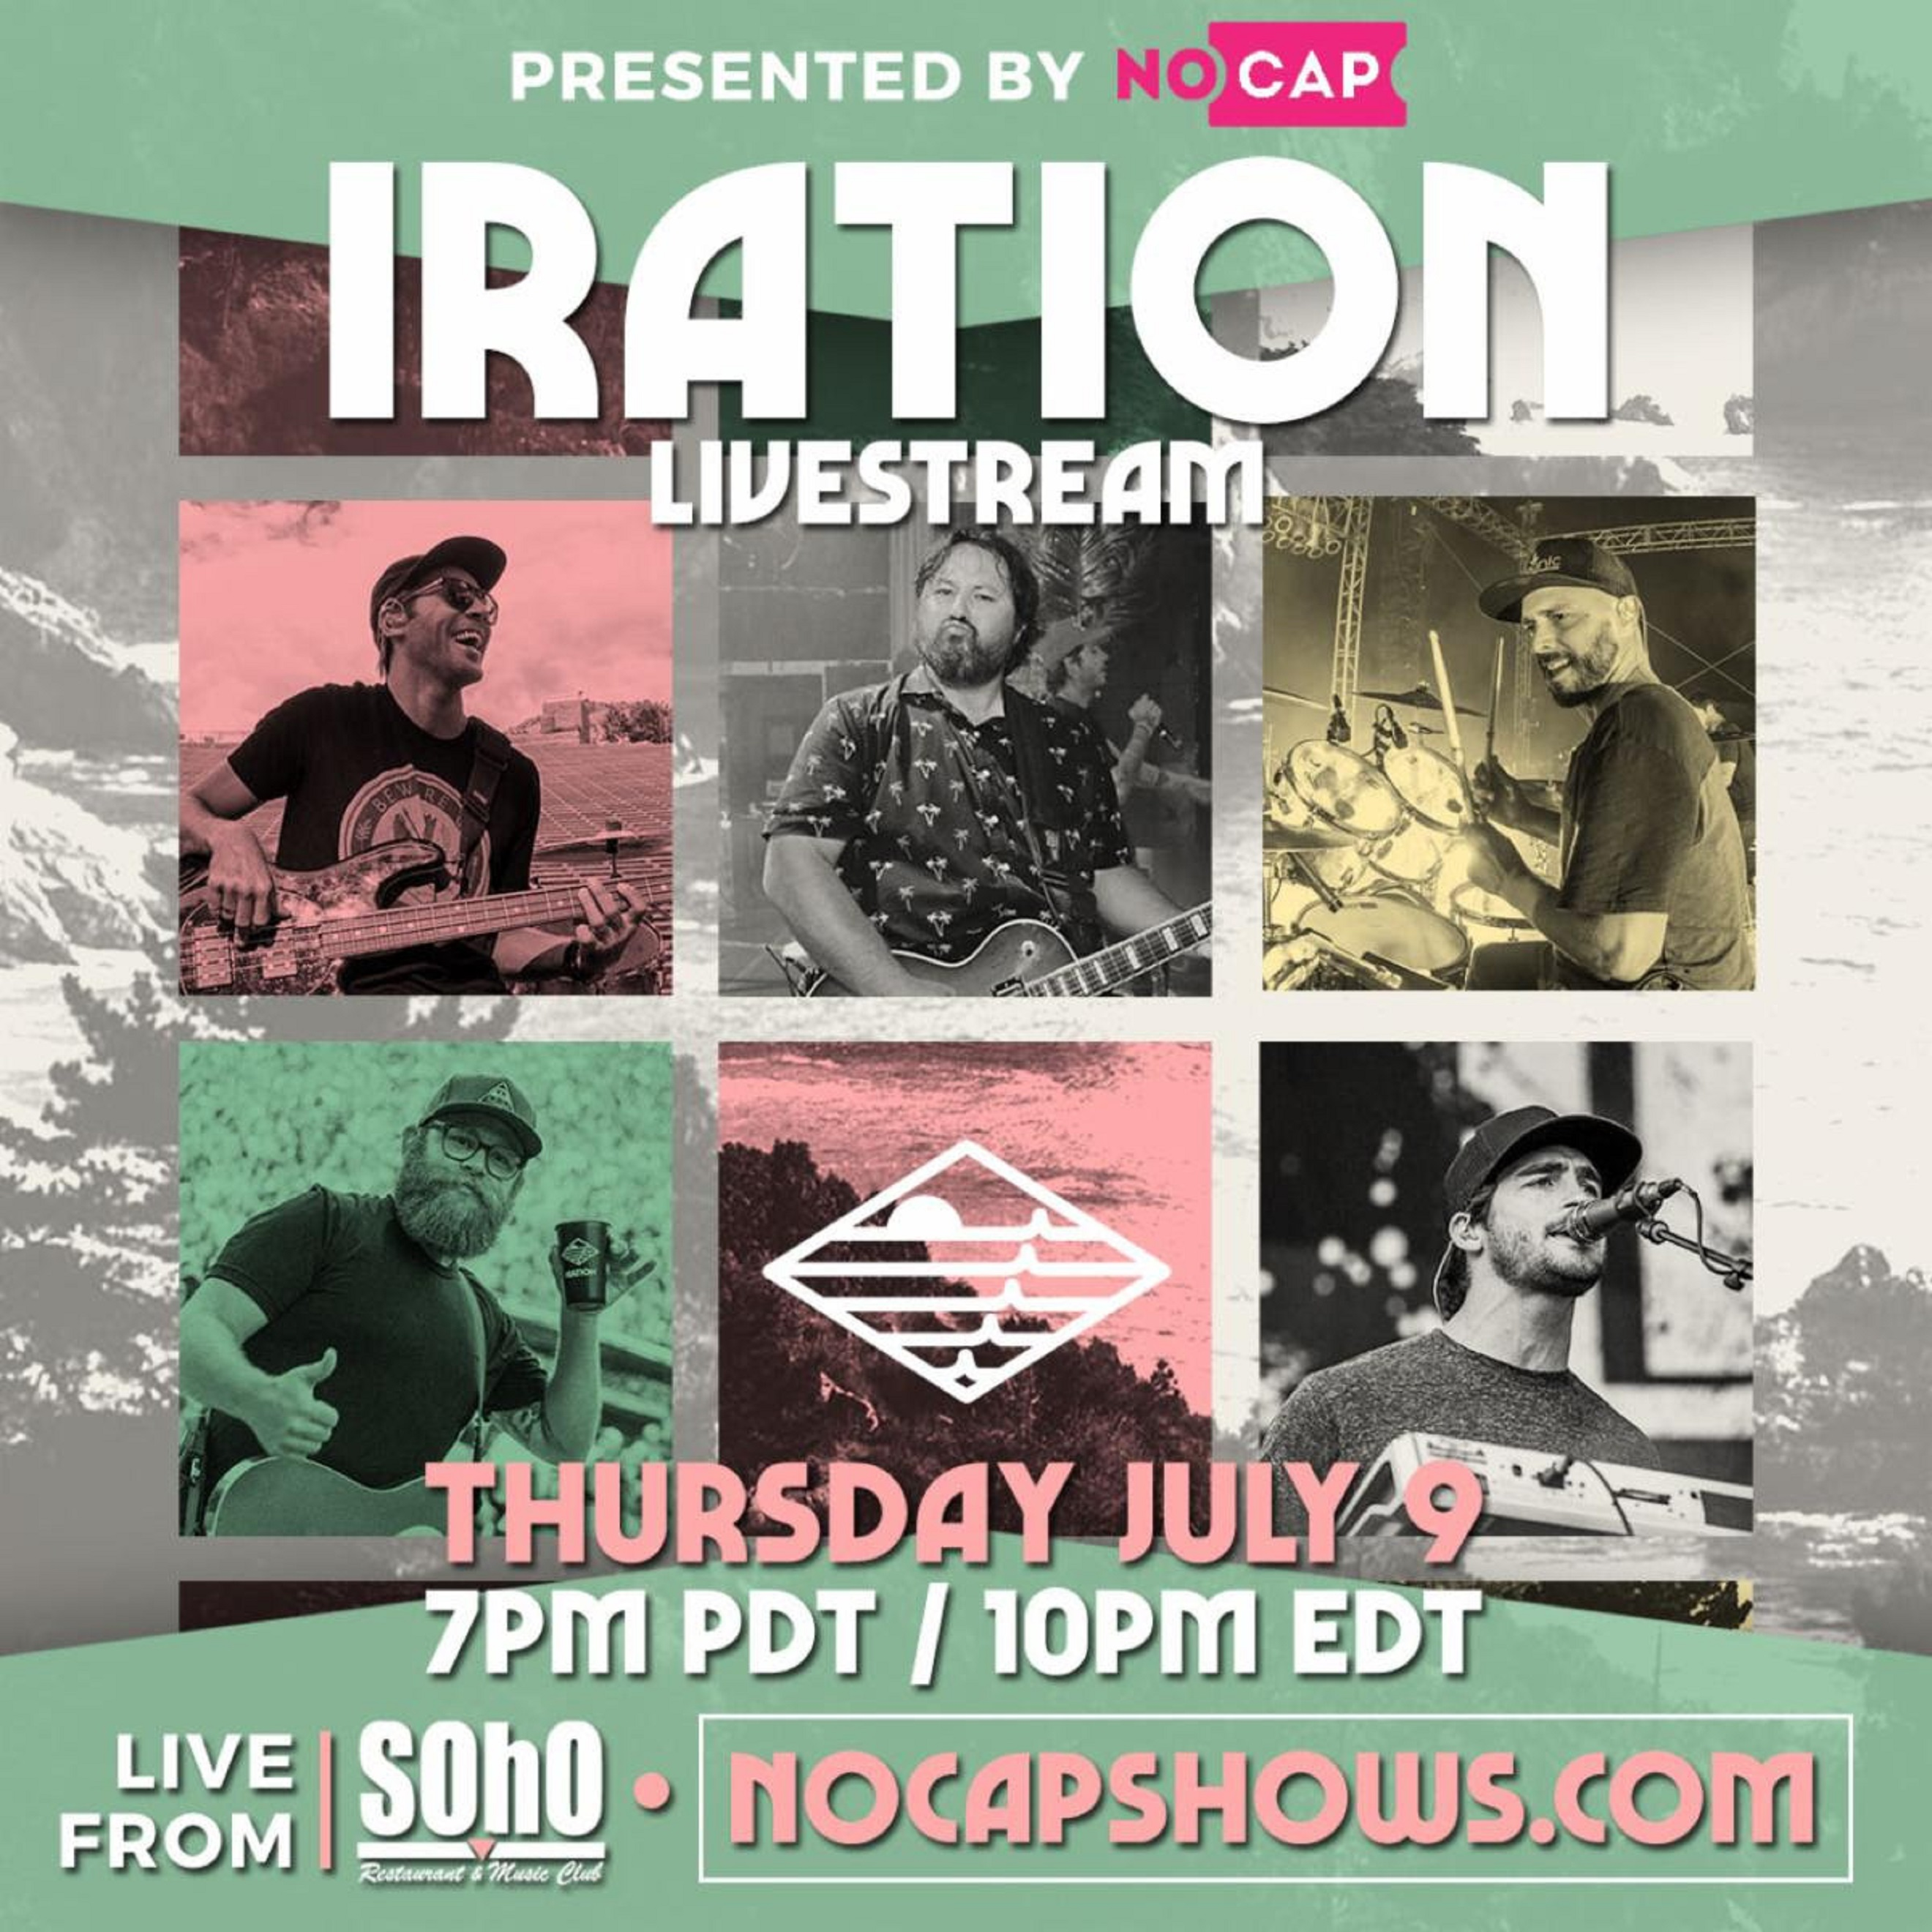 IRATION Announces Official Coastin' Livestream Performance For Thursday, July 9th